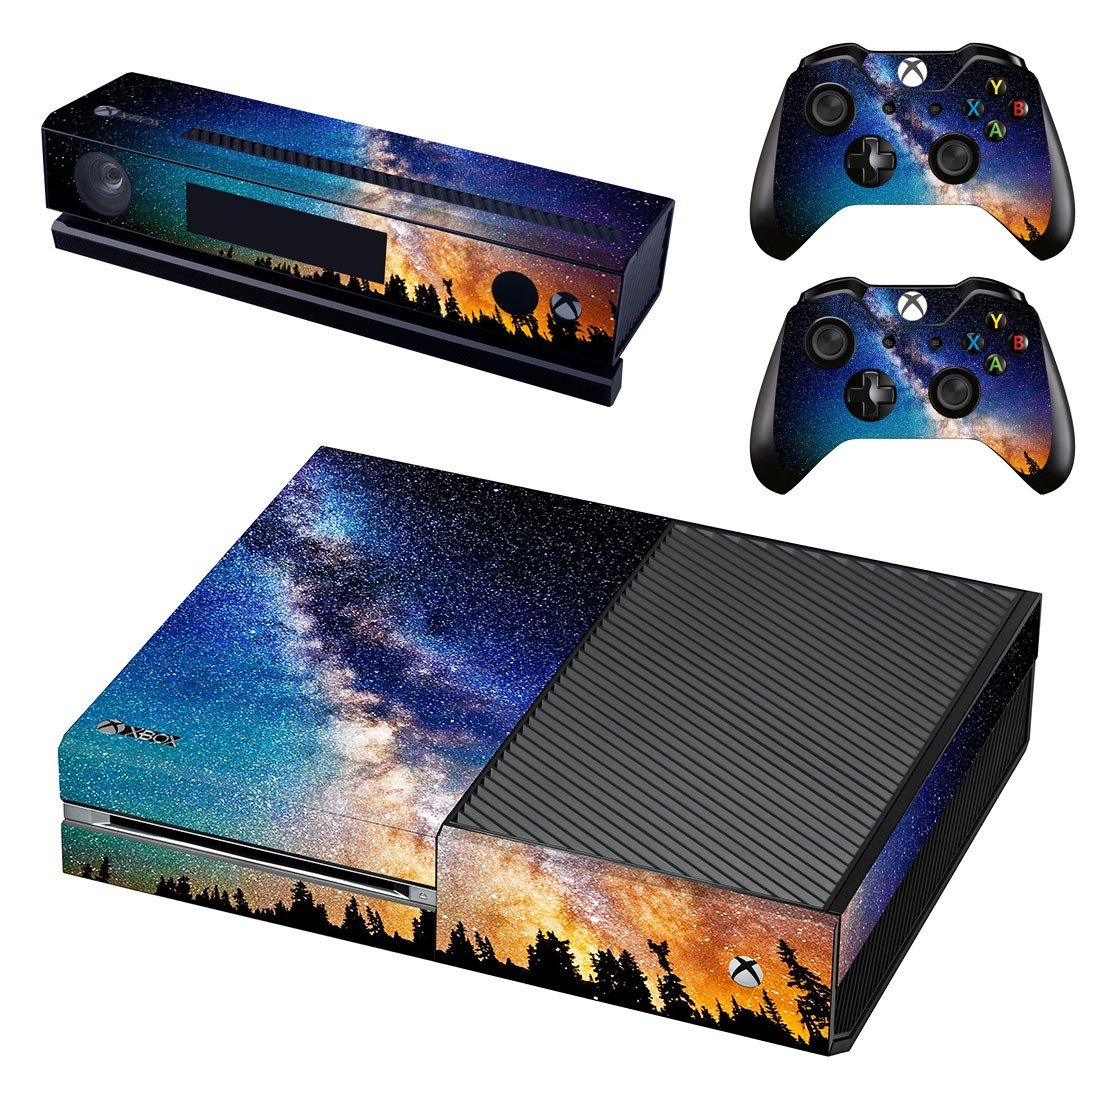 Starry sky skin decal for Xbox one console and controllers